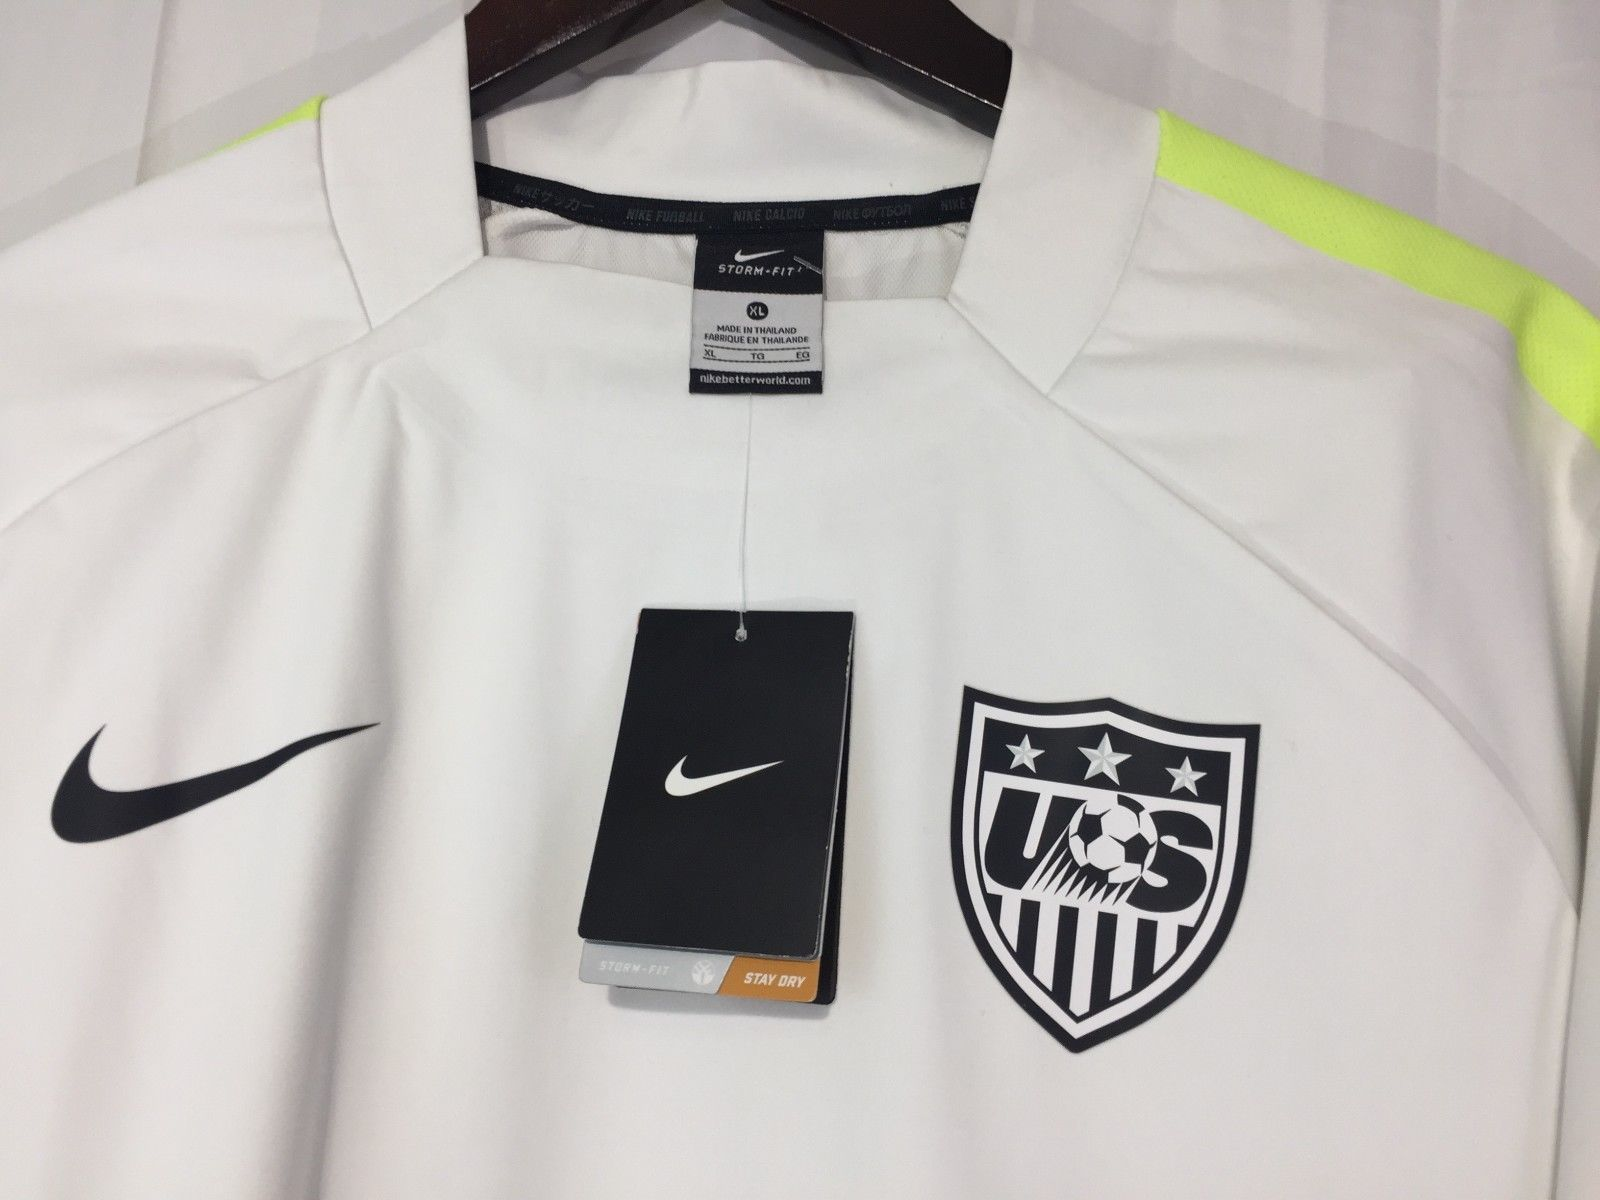 2ad190124340 NWT Nike Storm-Fit Team USA Soccer Long Sleeve Jersey 643848-102 Men s Sz  XL